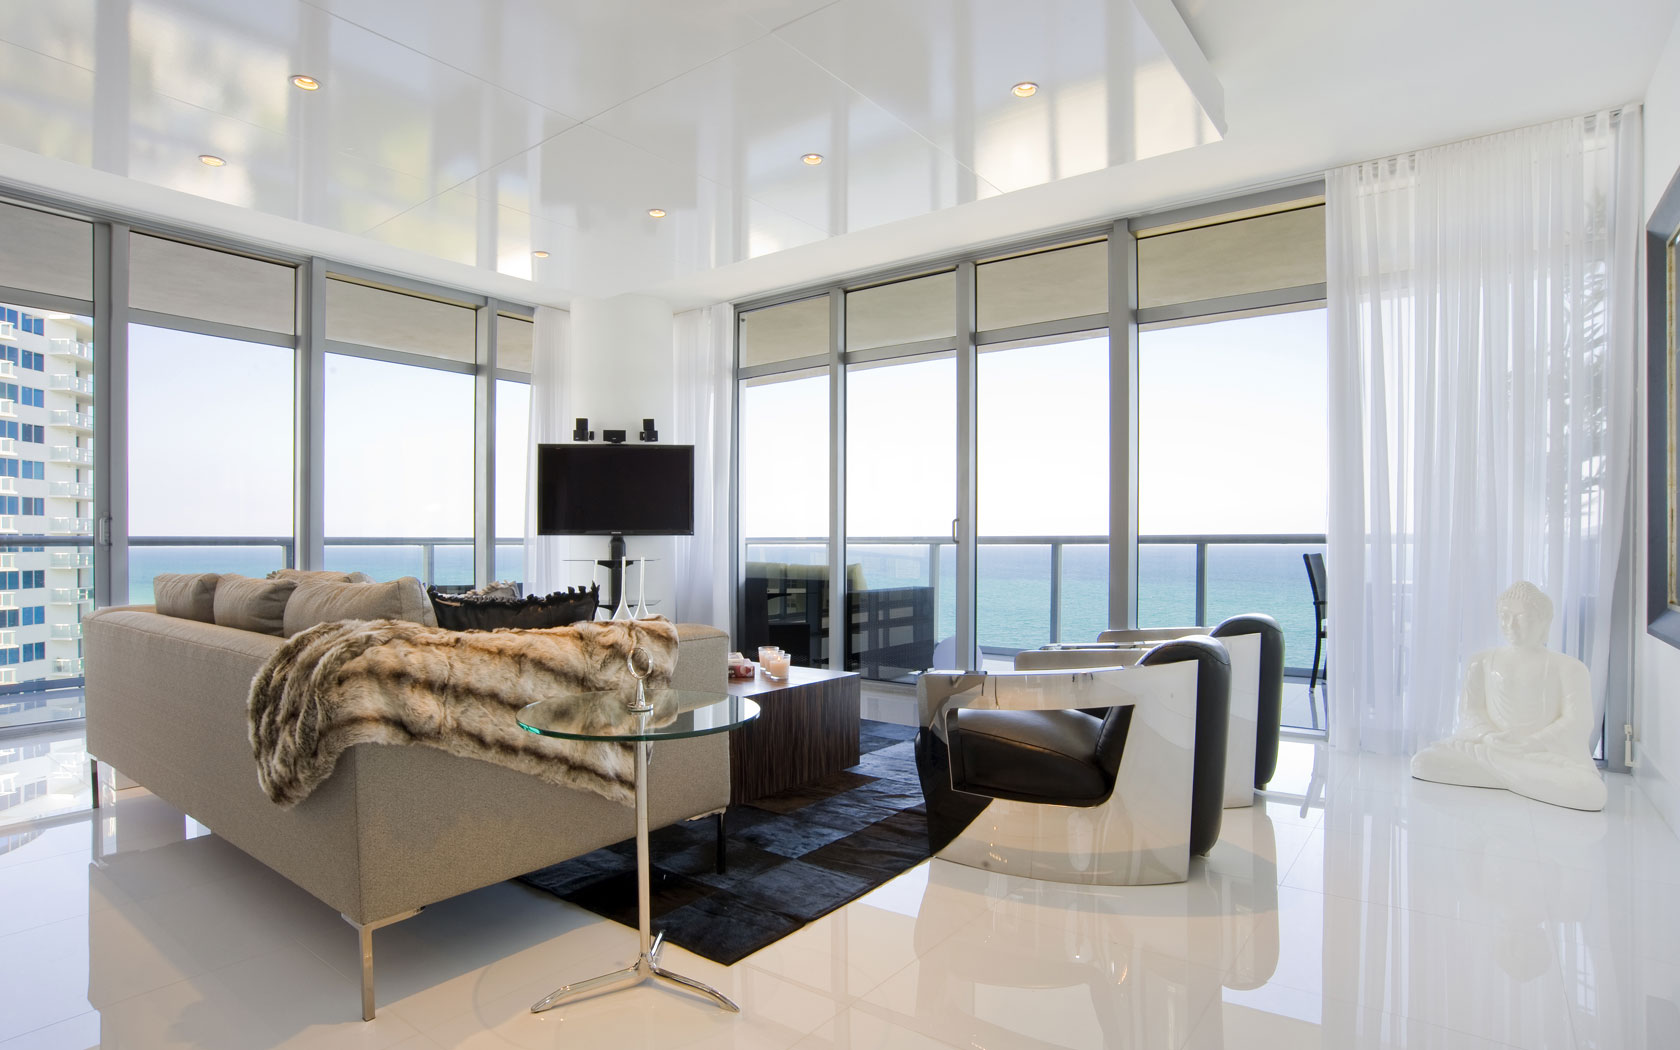 Beach condo interior design ideas joy studio design for Condo interior design photos